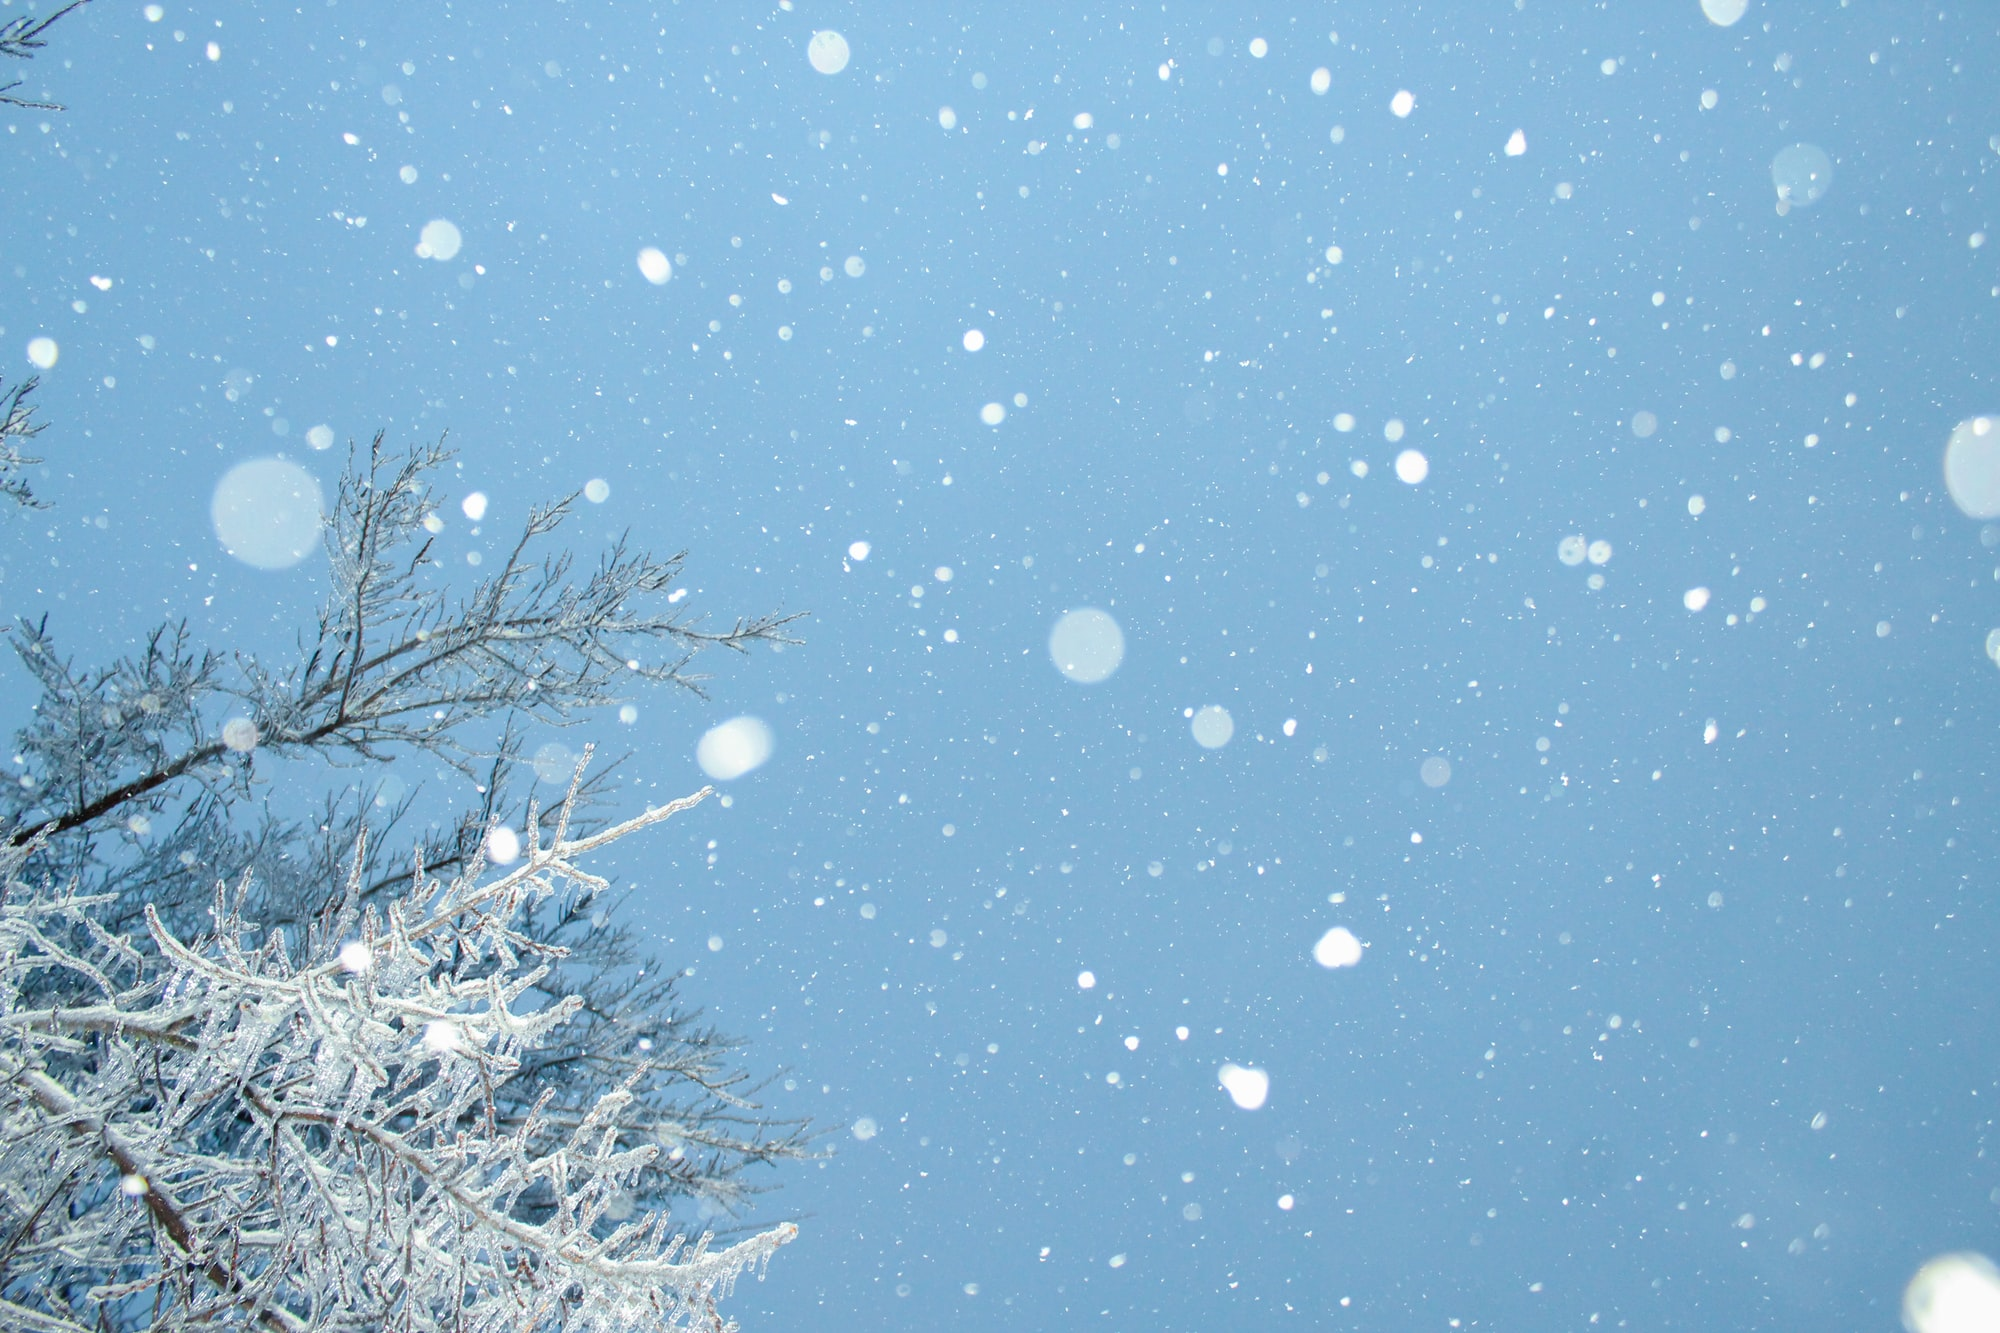 How compatible are Redshift and Snowflake's SQL syntaxes?